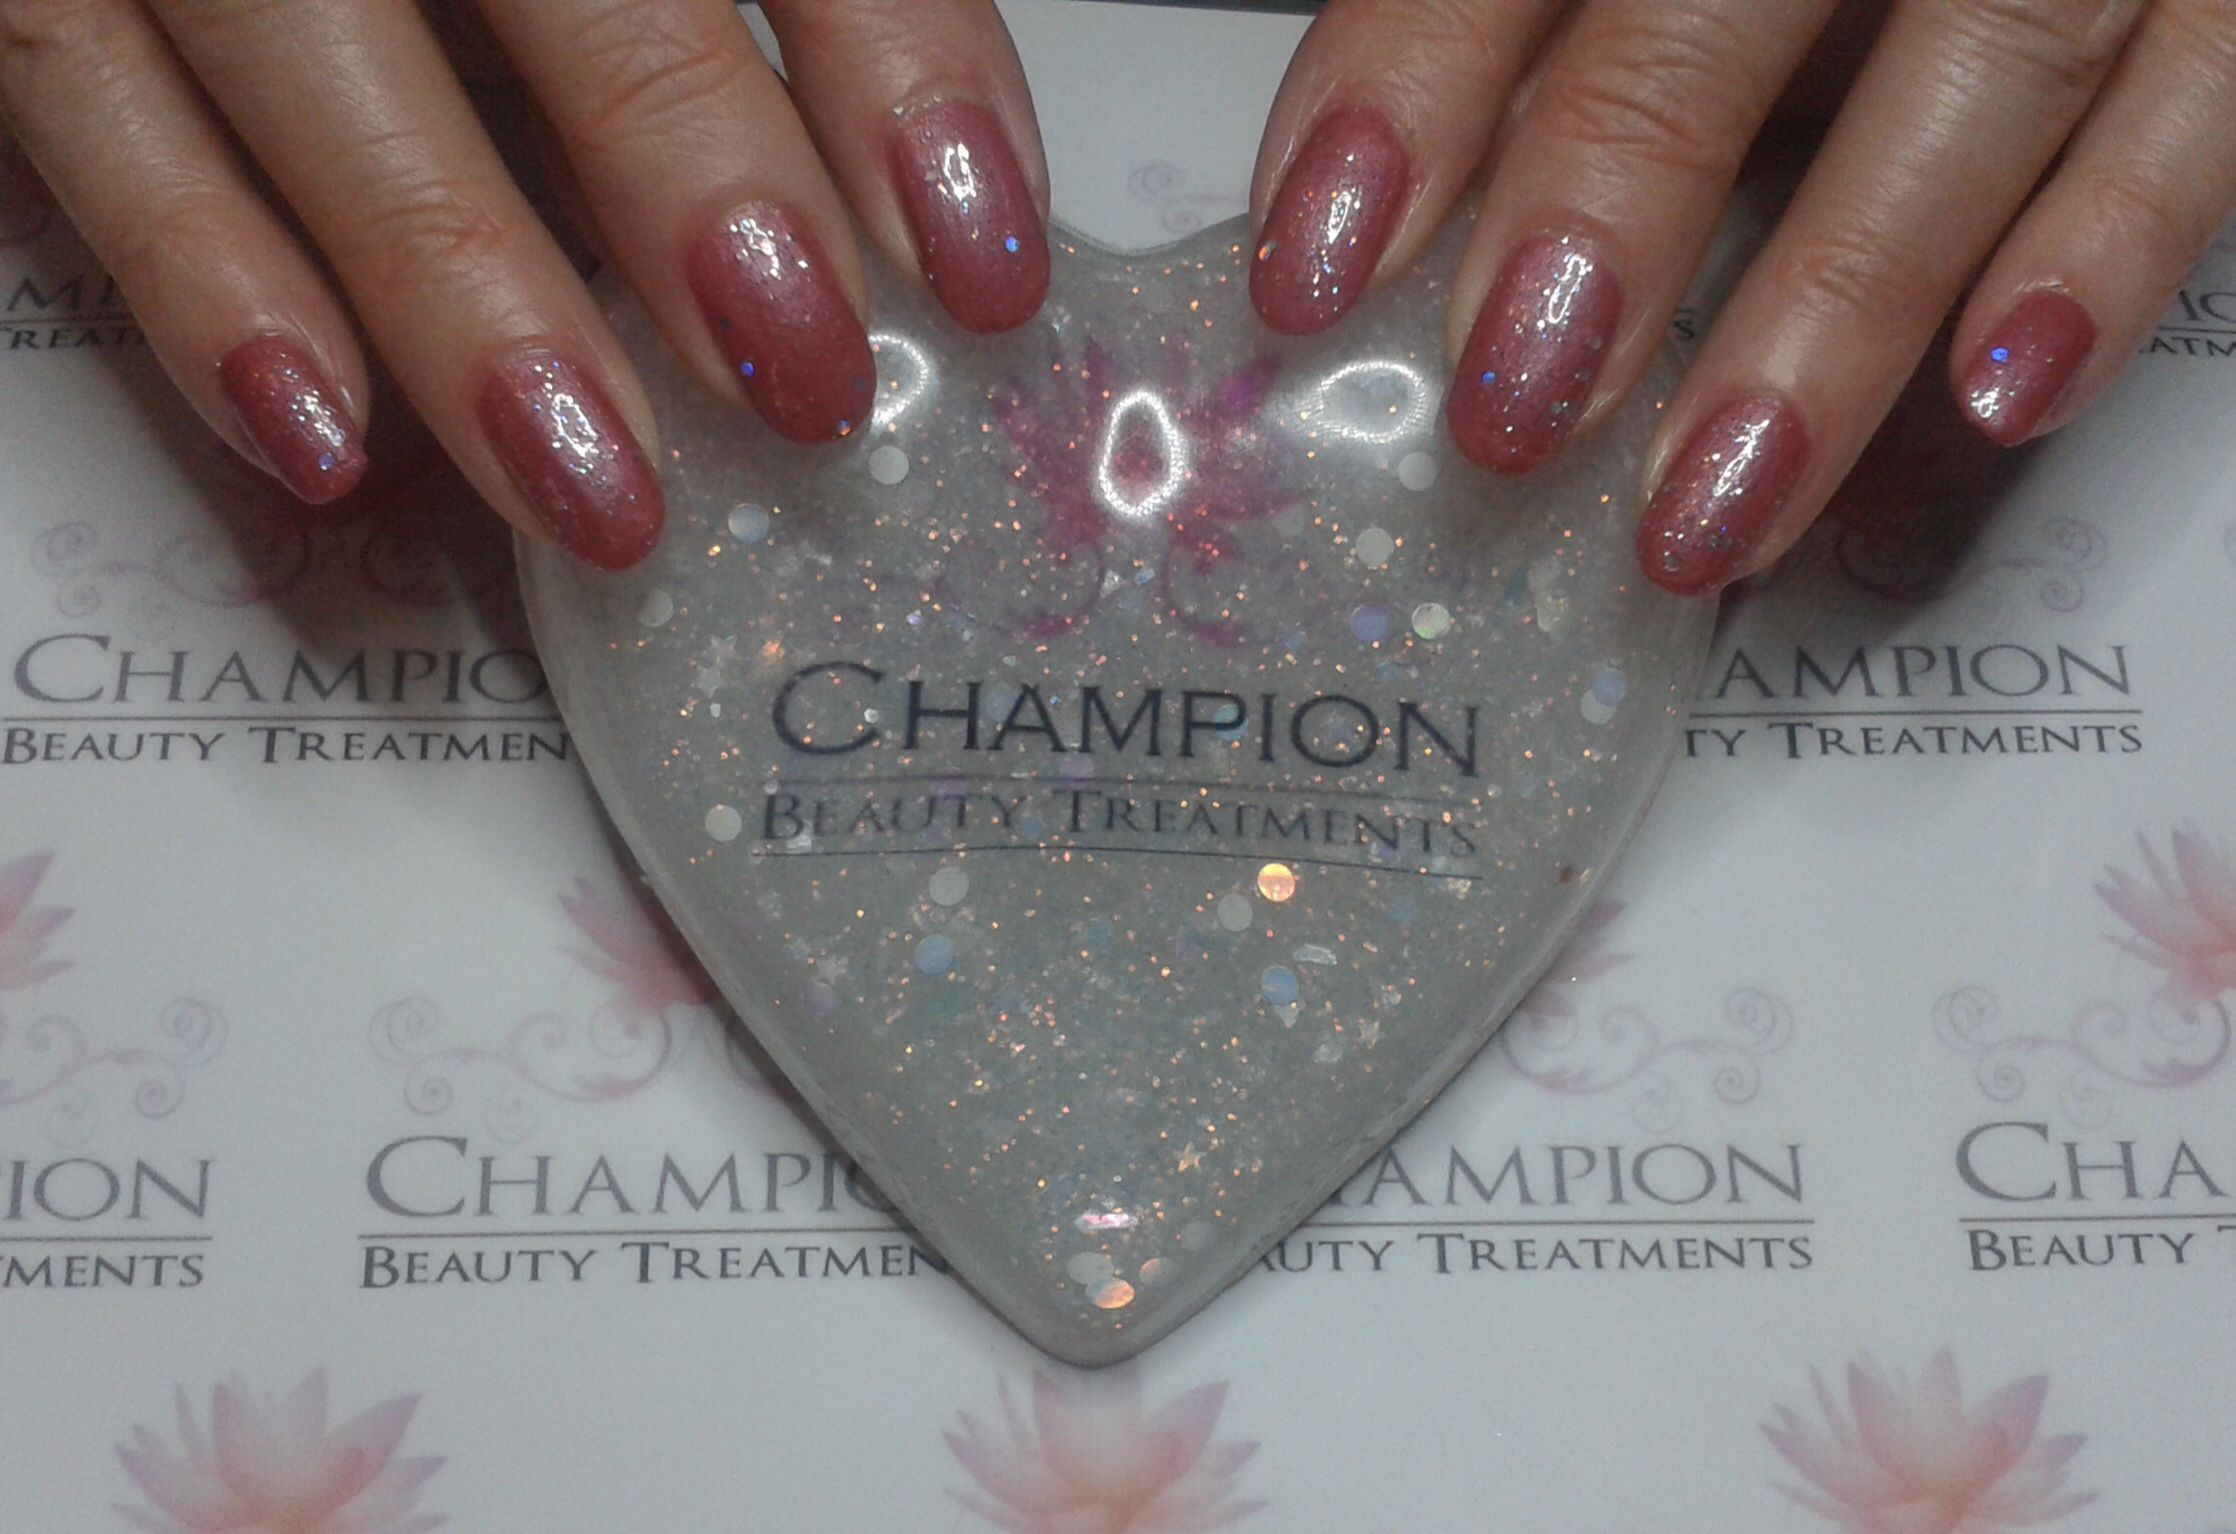 A basic manicure complete with Revlon 'Iced Mauve' & 'Stunning' nail polish.